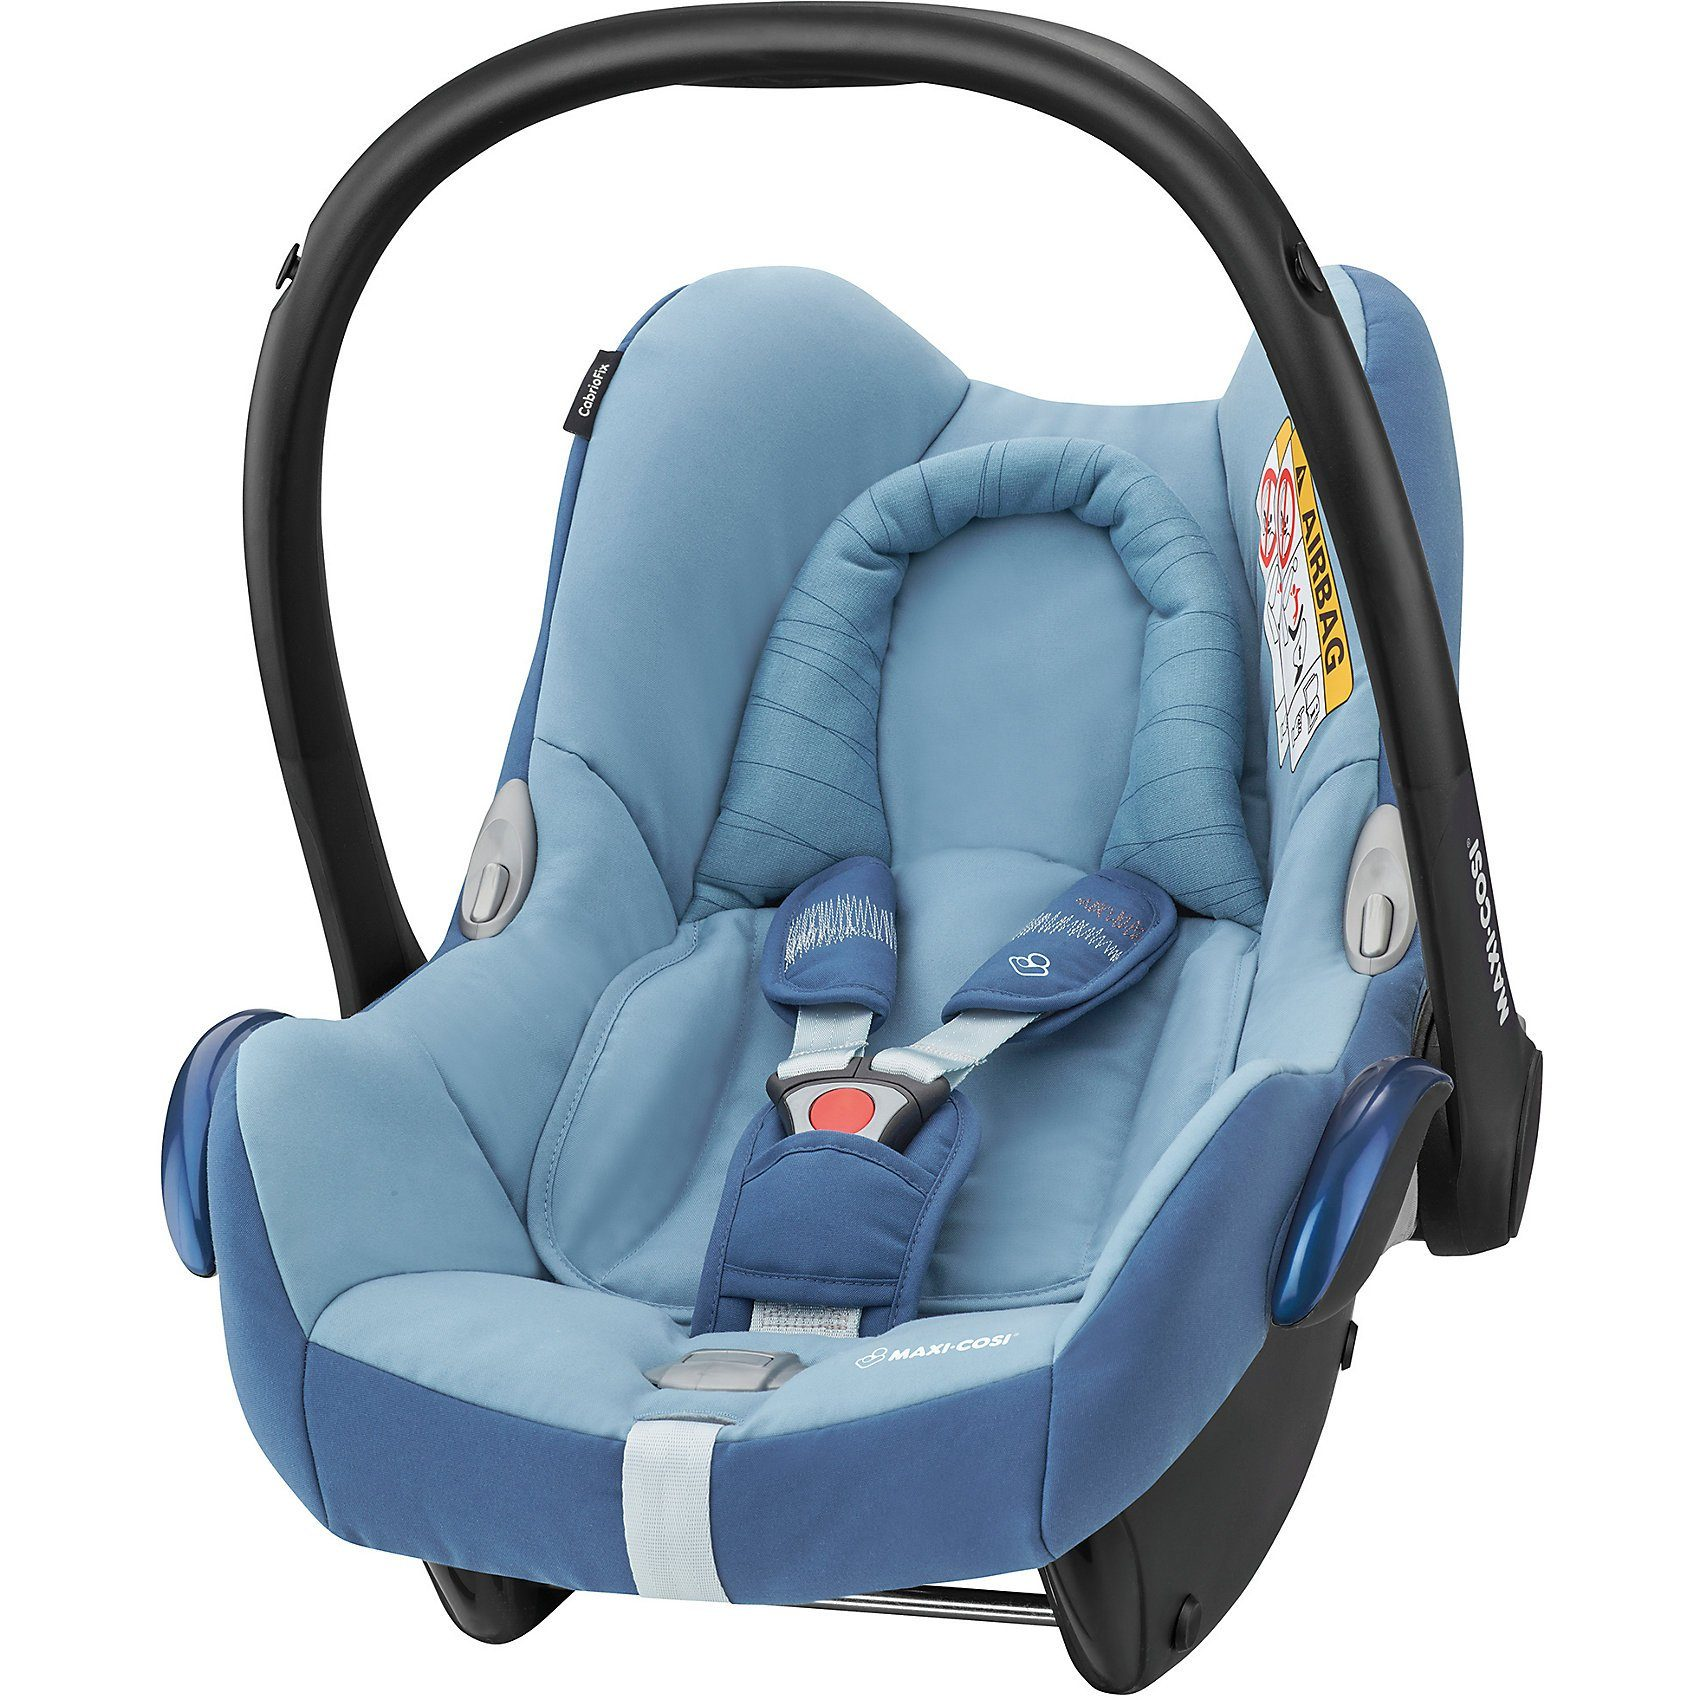 Maxi-Cosi Babyschale Cabriofix, Frequency Blue, 2018